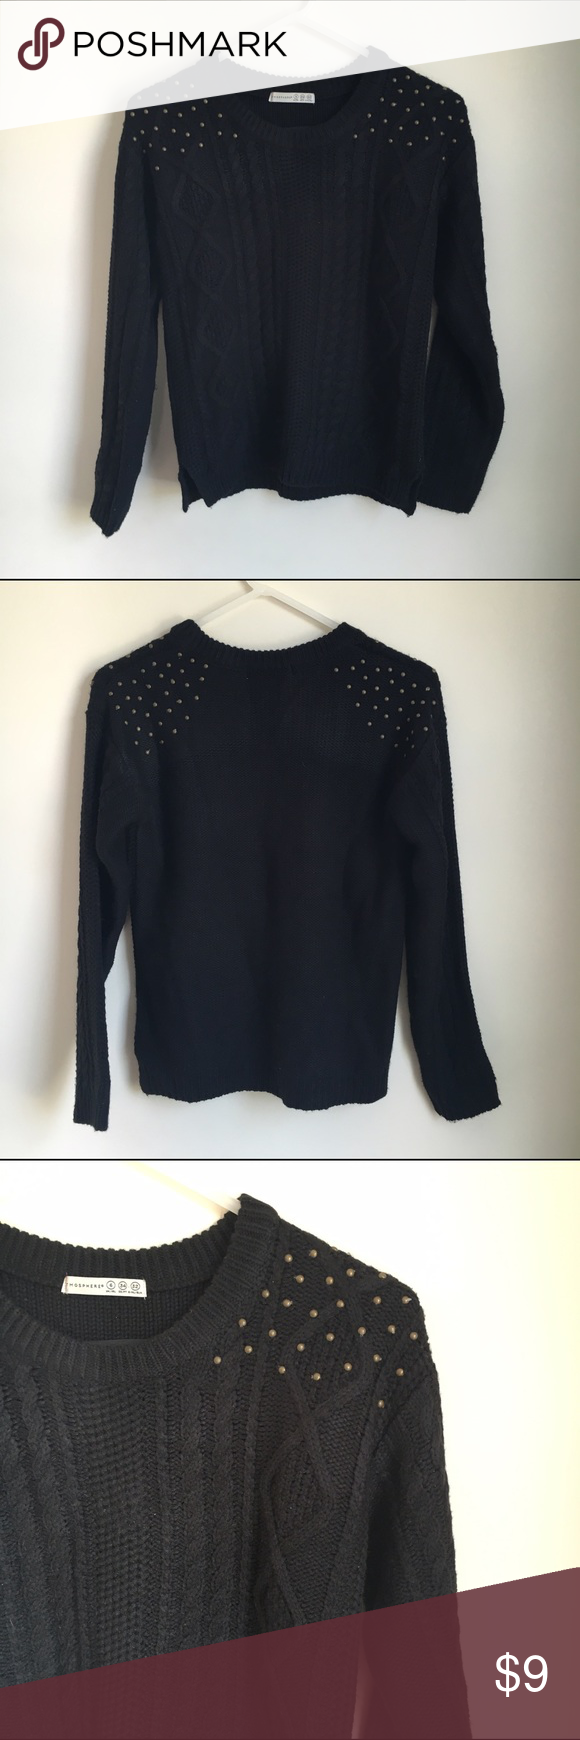 Atmosphere Knit  Studded Black Sweater